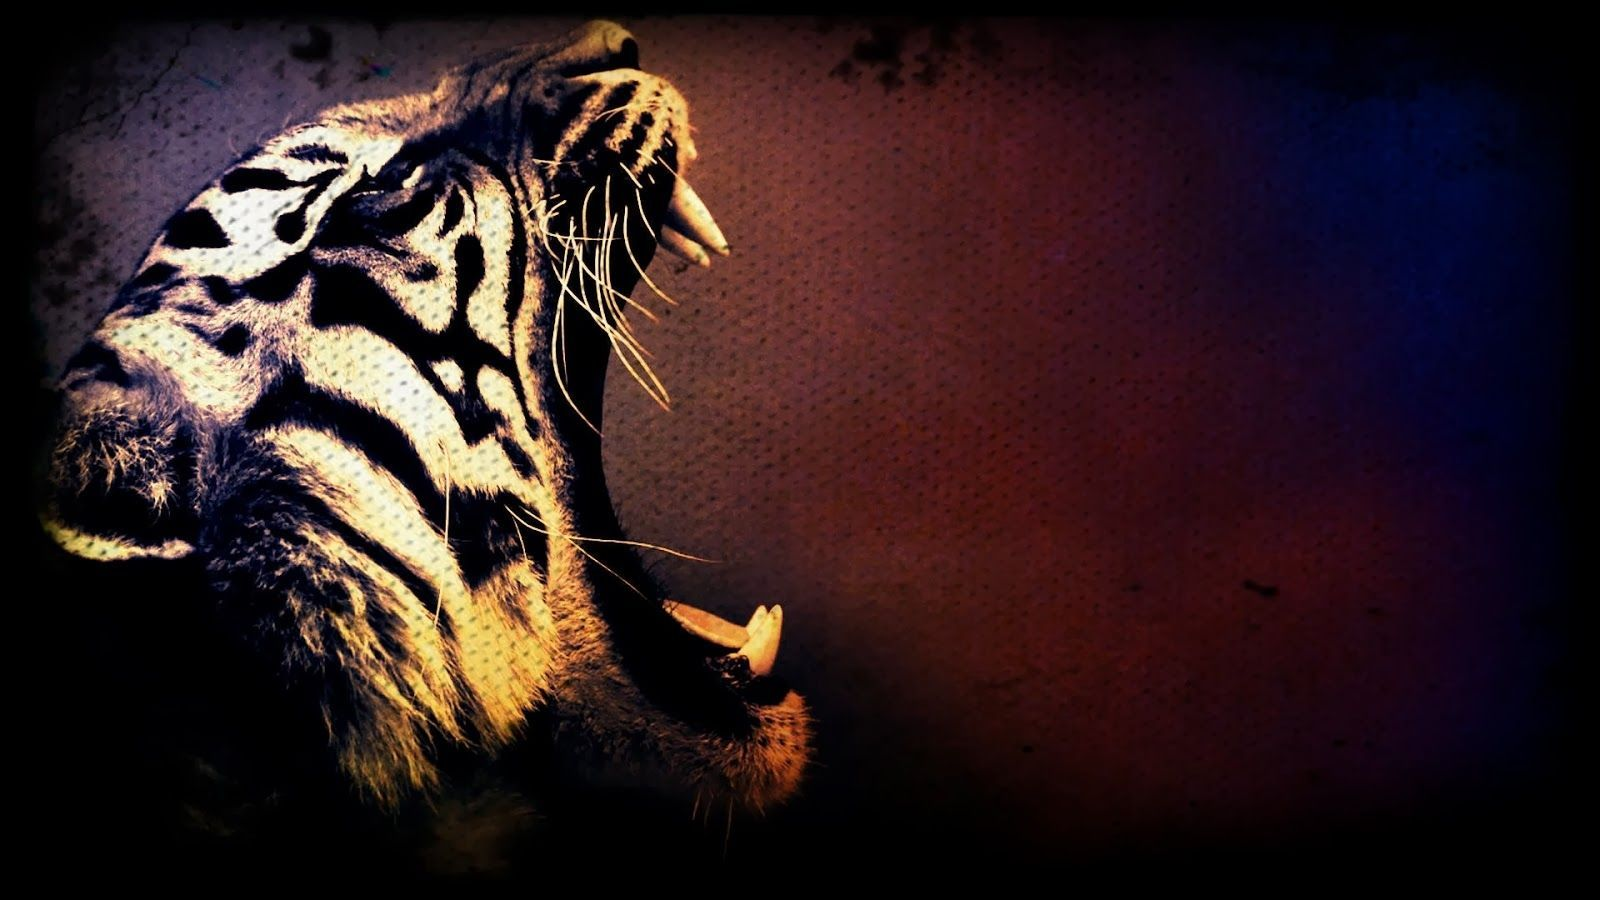 hd wallpapers of tiger